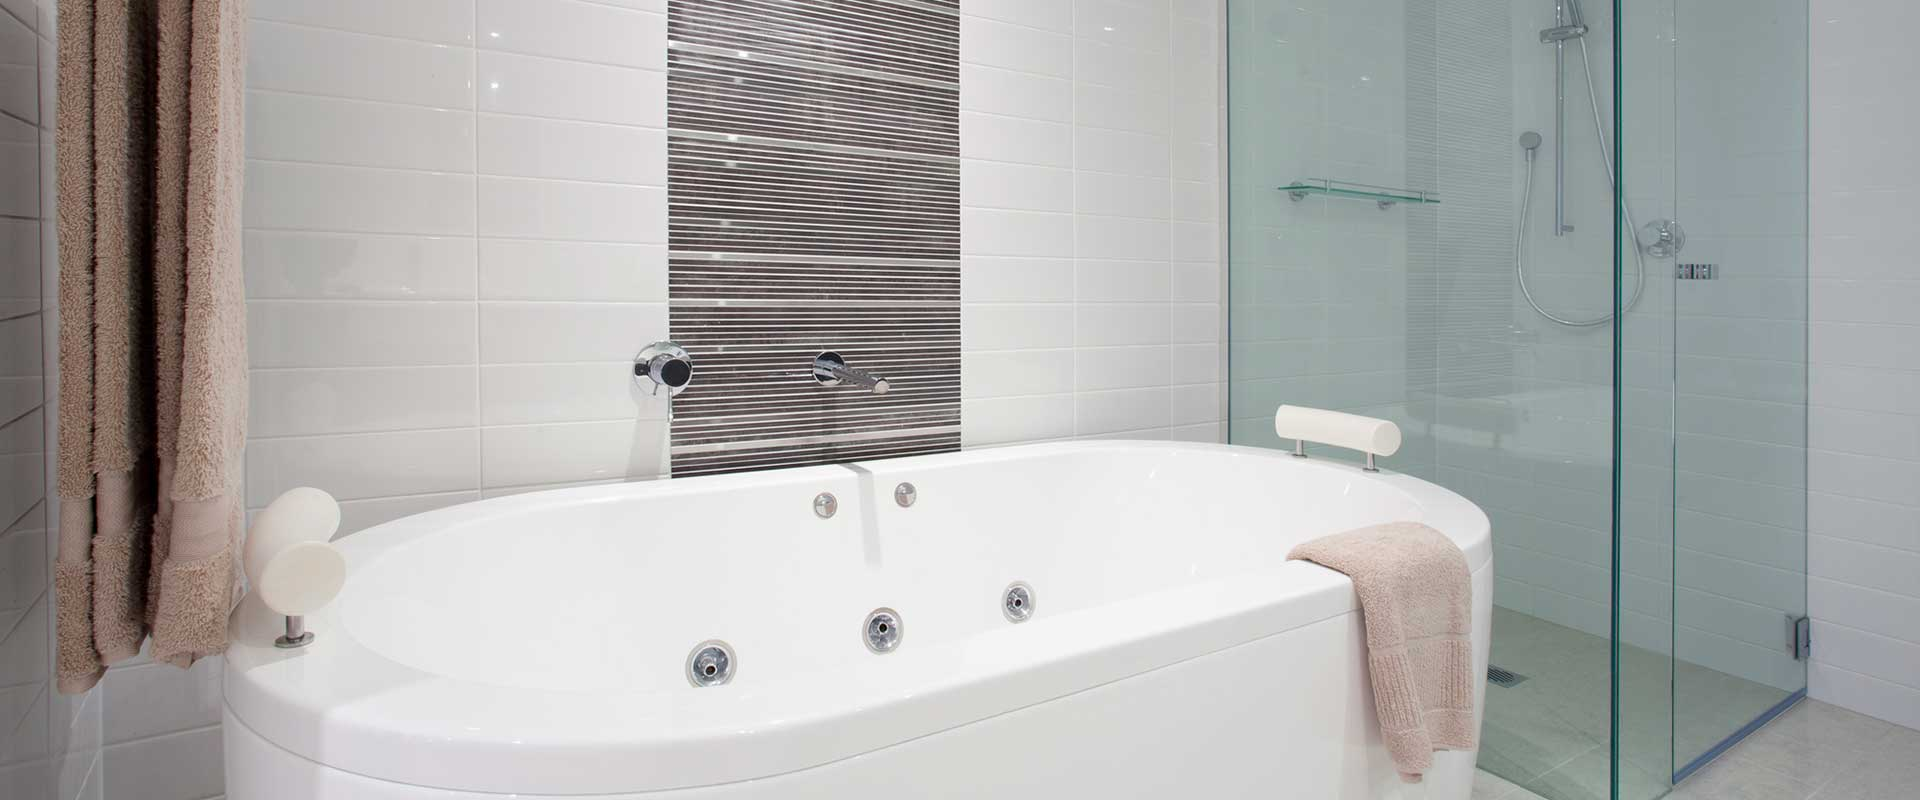 Bathroom Installations York